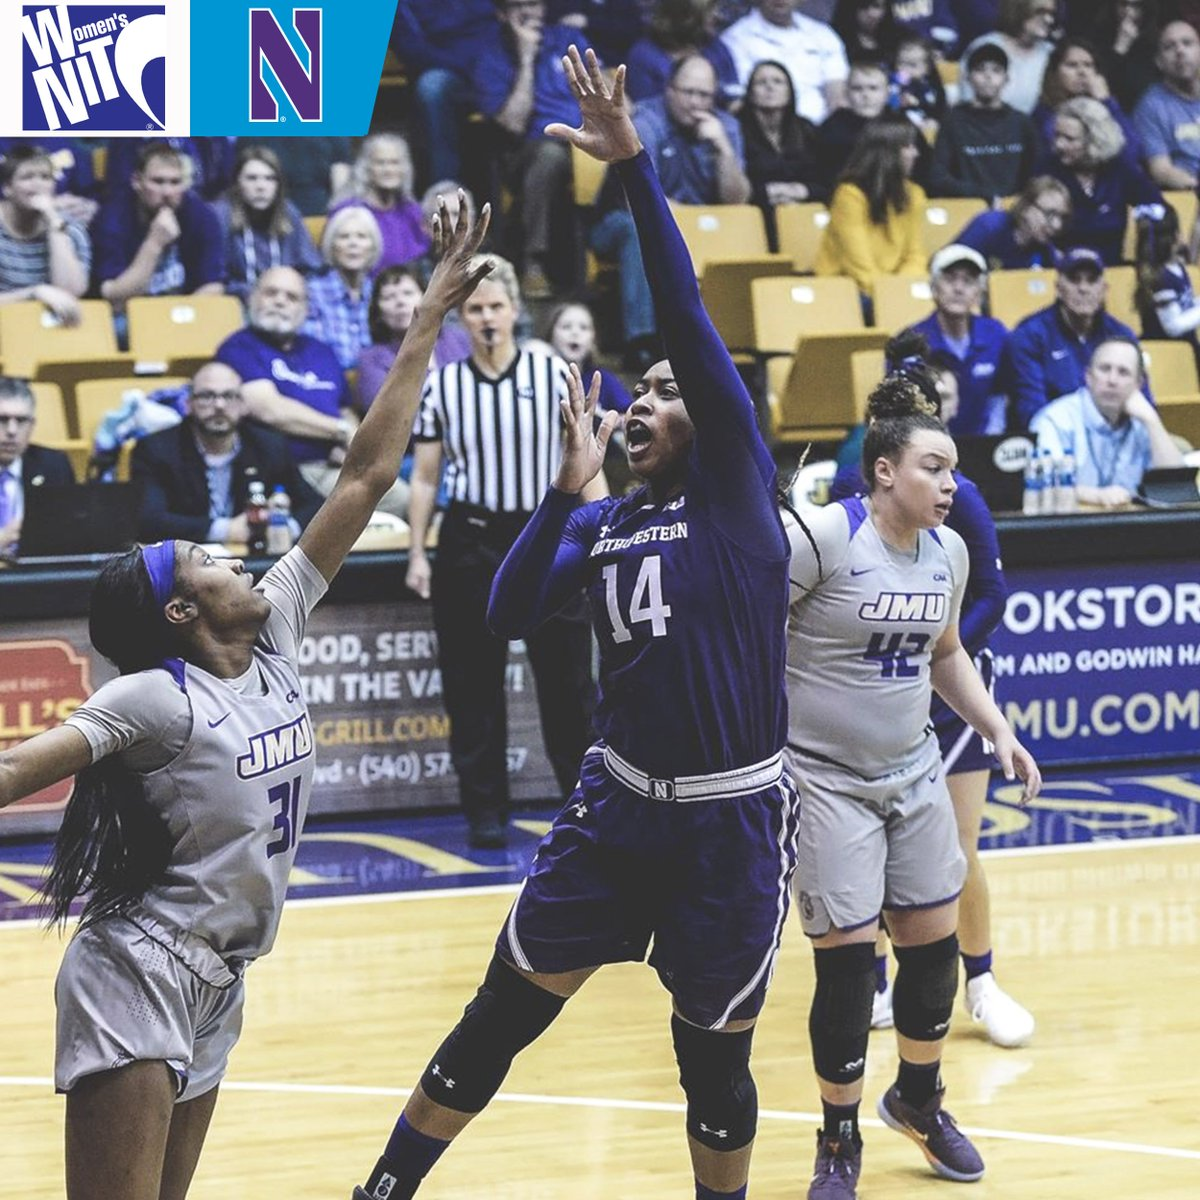 Senior Pallas Kunaiyi-Akpanah recorded her 19th double-double of the season with 11 points and 11 rebounds in Wednesday's victory, setting the @nuwbball single-season record.  #B1GWBBall x #WNIT